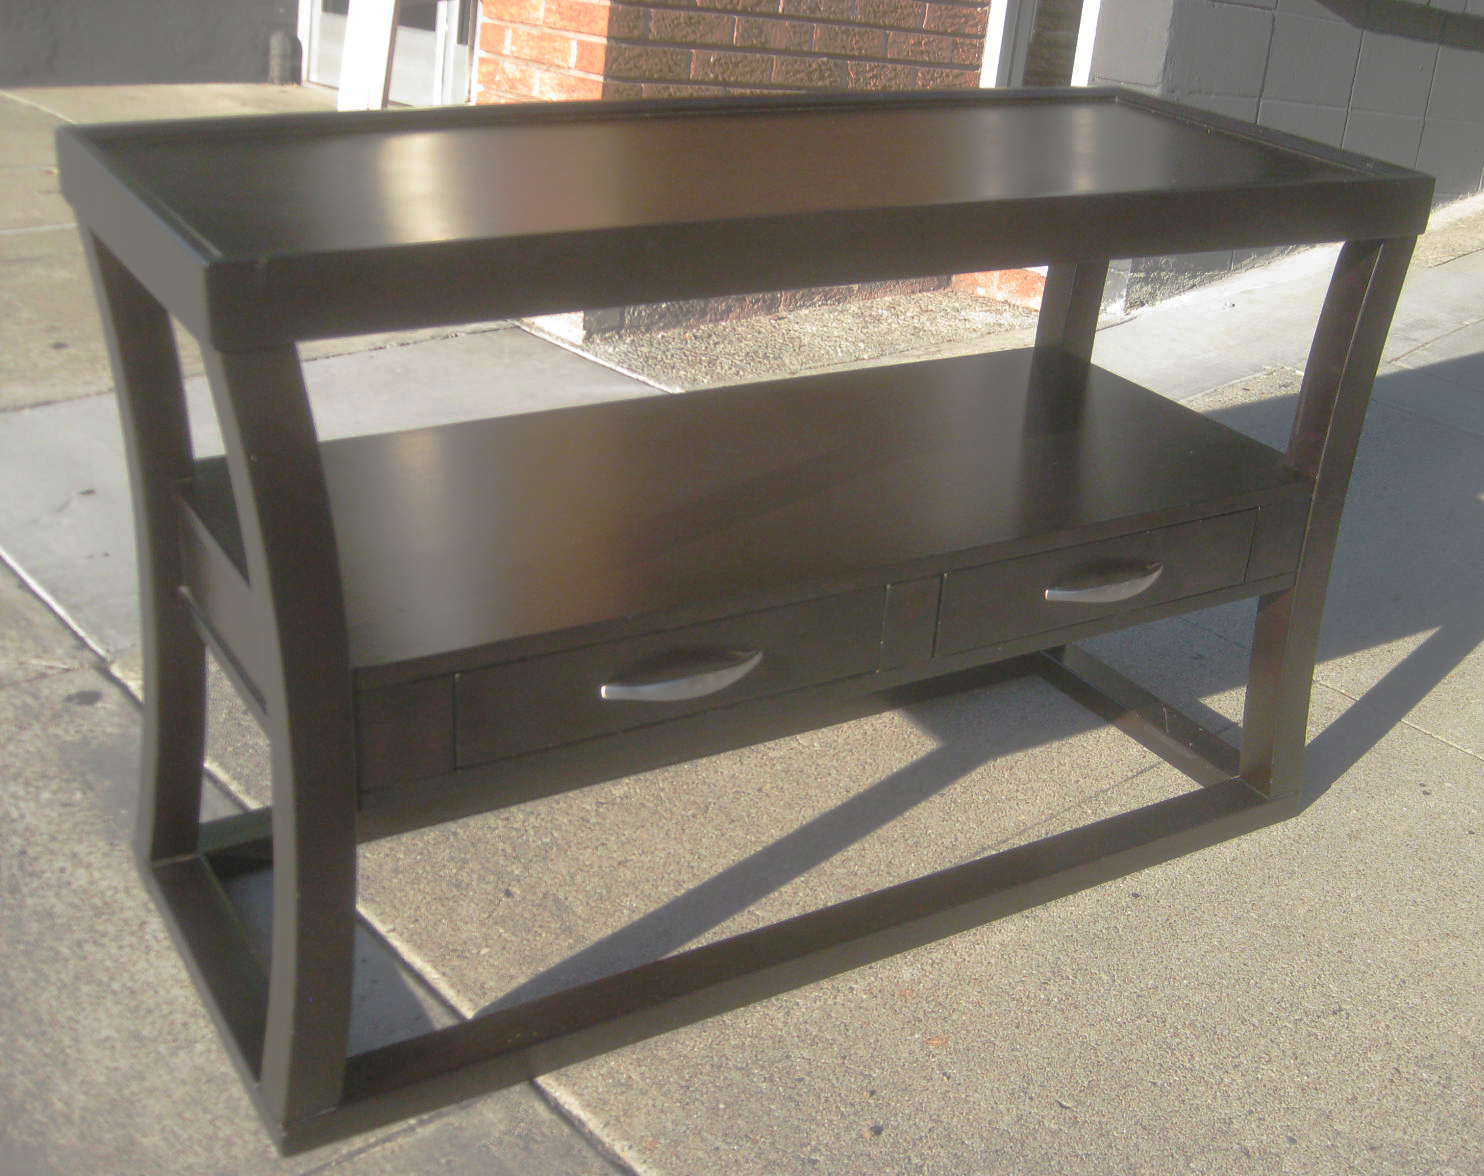 Uhuru furniture collectibles sold espresso console - Table console extensible solde ...